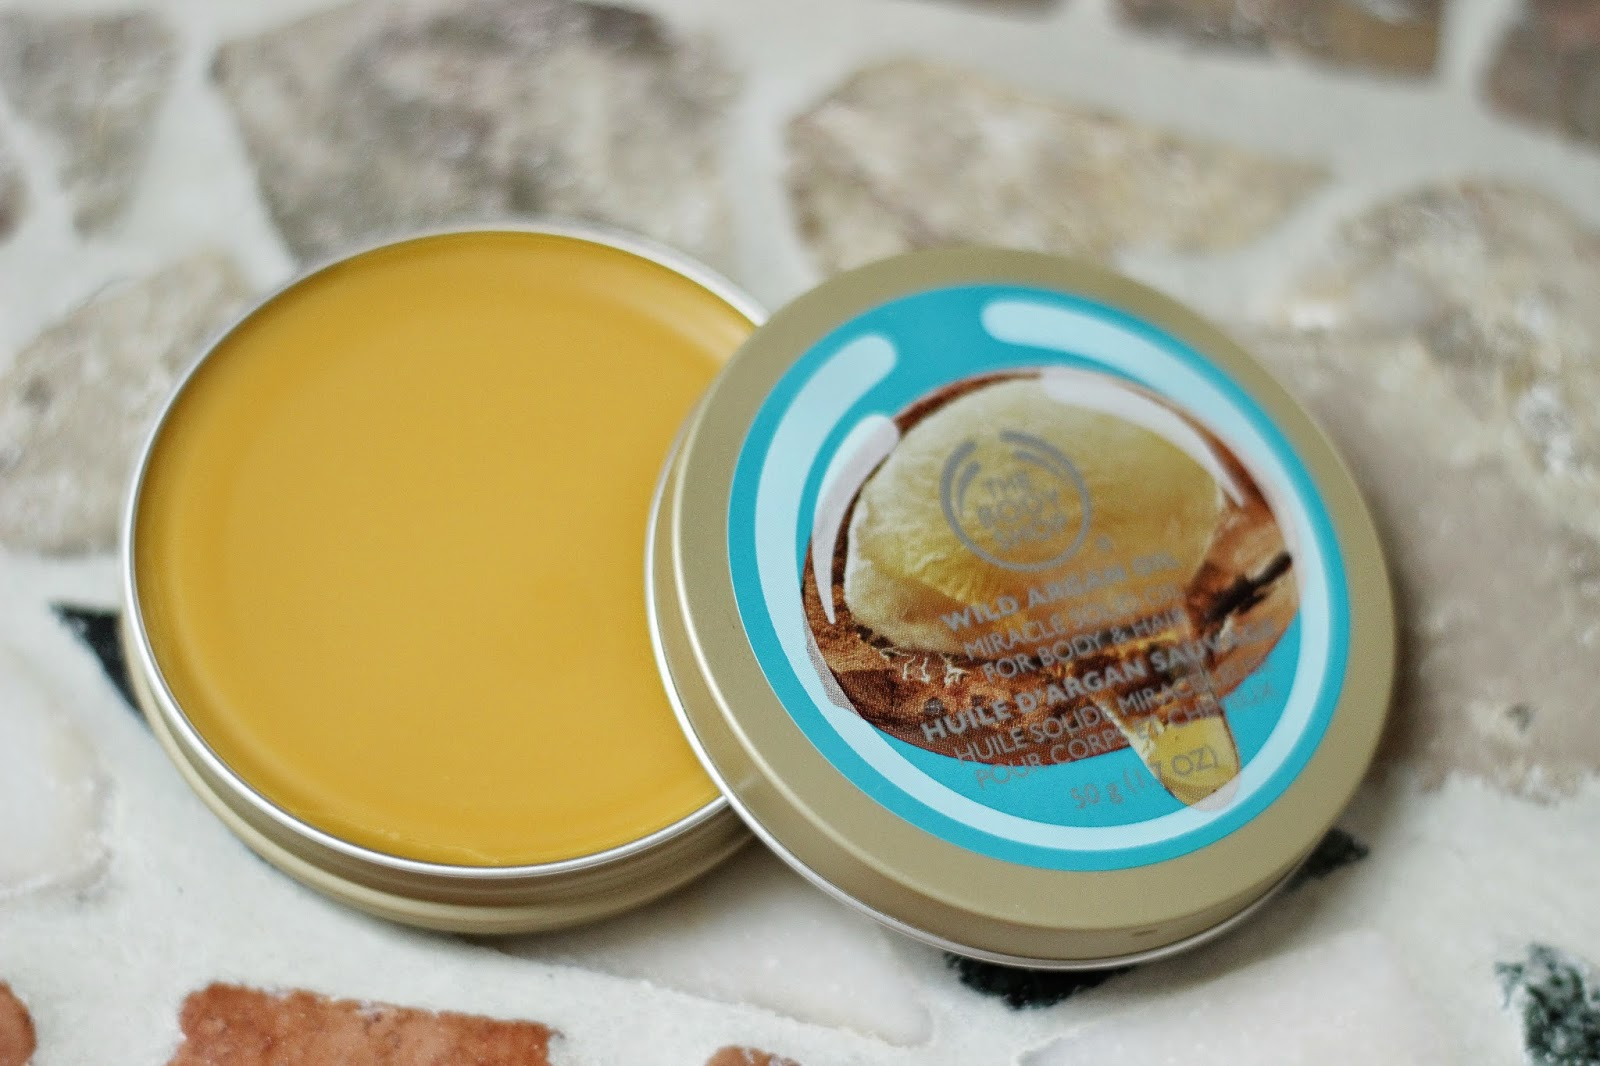 review ervaring the body shop wild argan oil lijn, review ervaring the body shop wild argan oil miracle solid oil